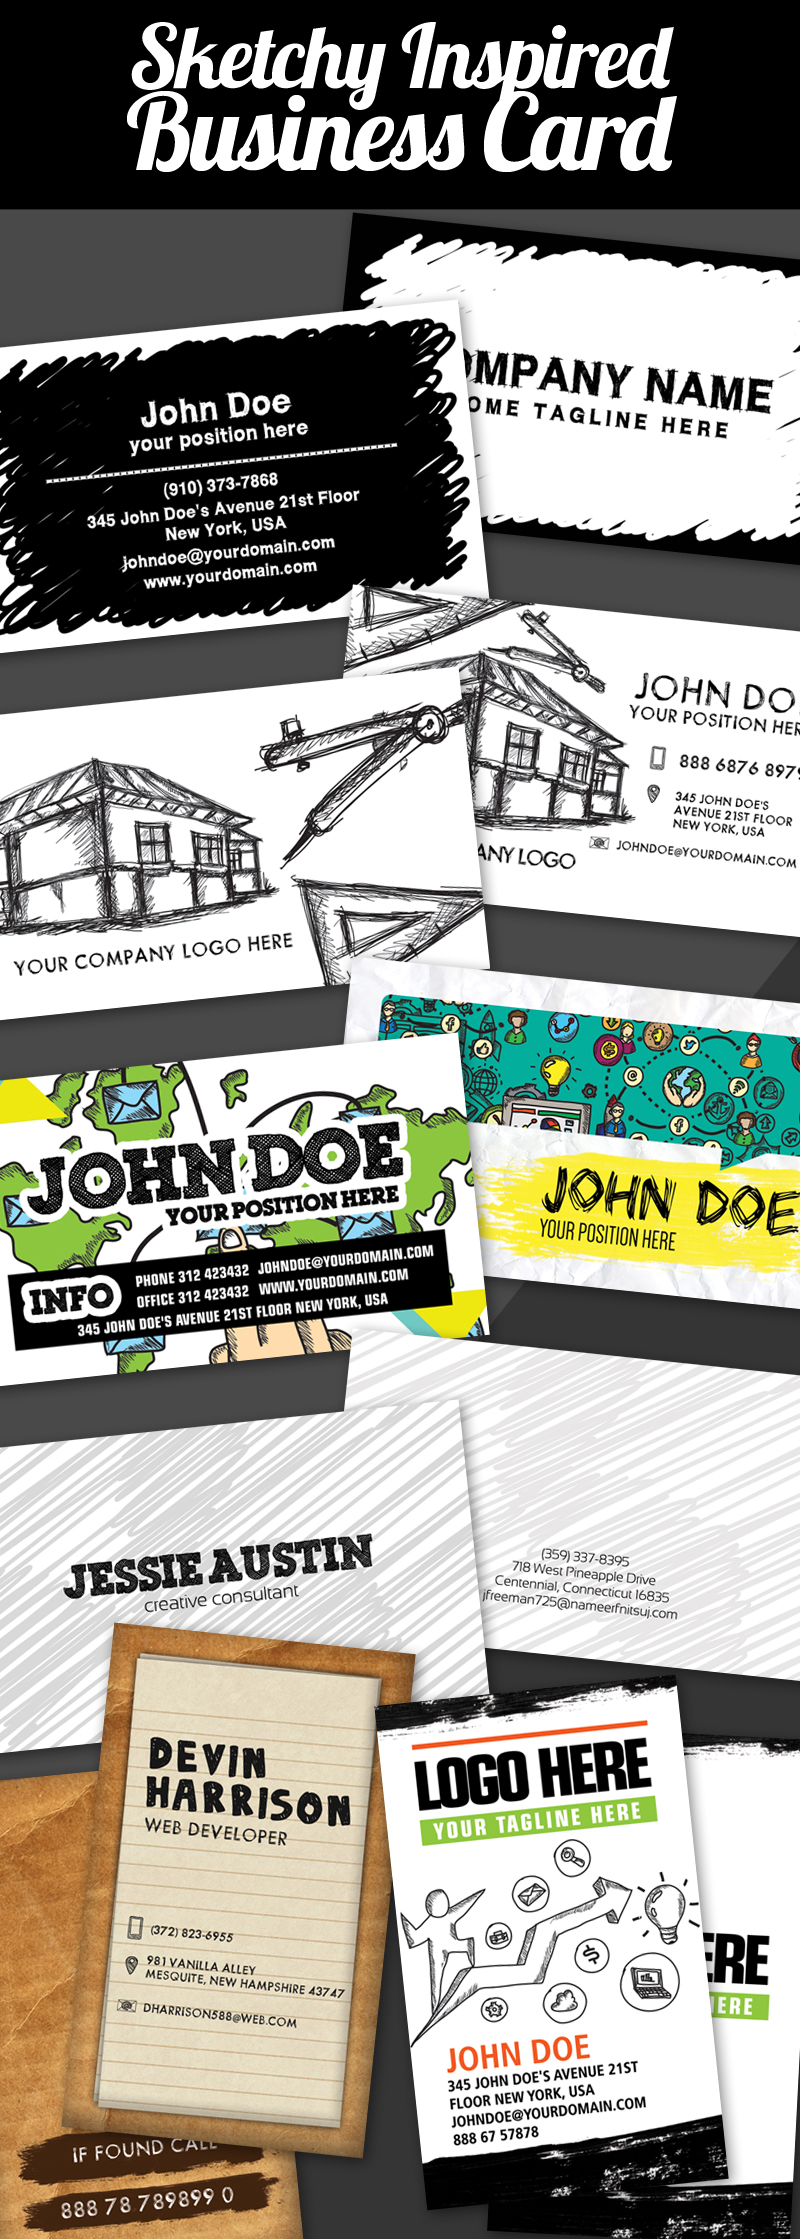 Sketchy Inspired Business Card